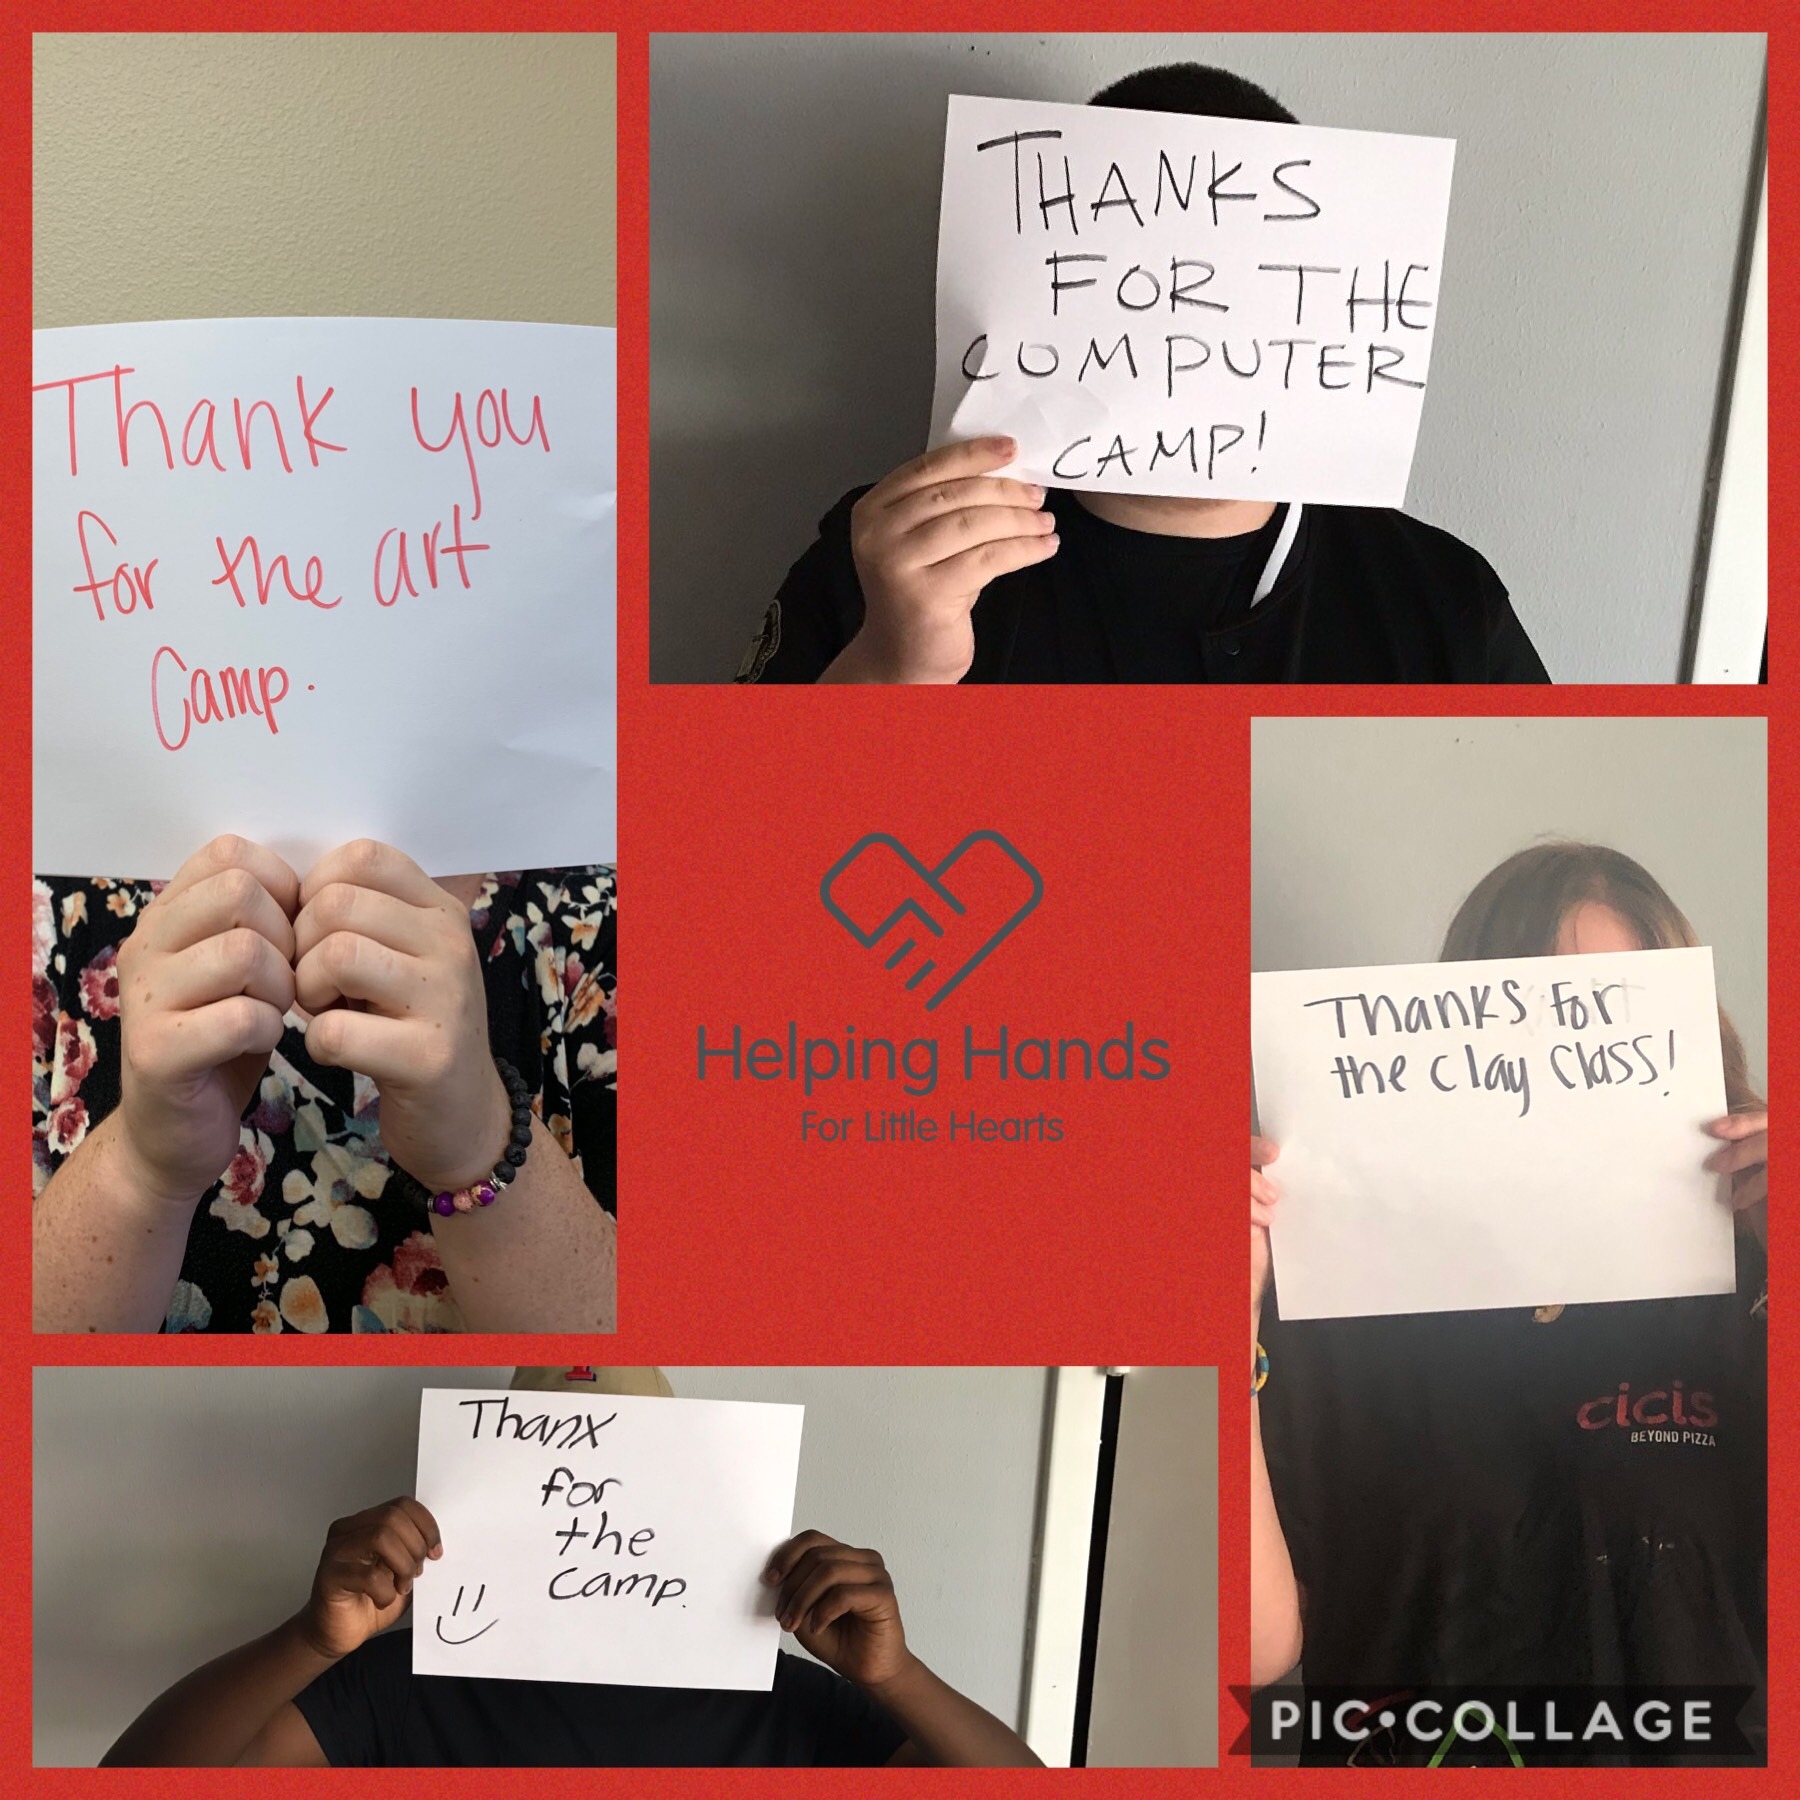 Summer Camp!! - We are so thankful for Helping Hands for Little Hearts for sending four of our residents to summer camps of their choice! Our community goes above and beyond to help provide normalcy for our residents and we are so grateful!